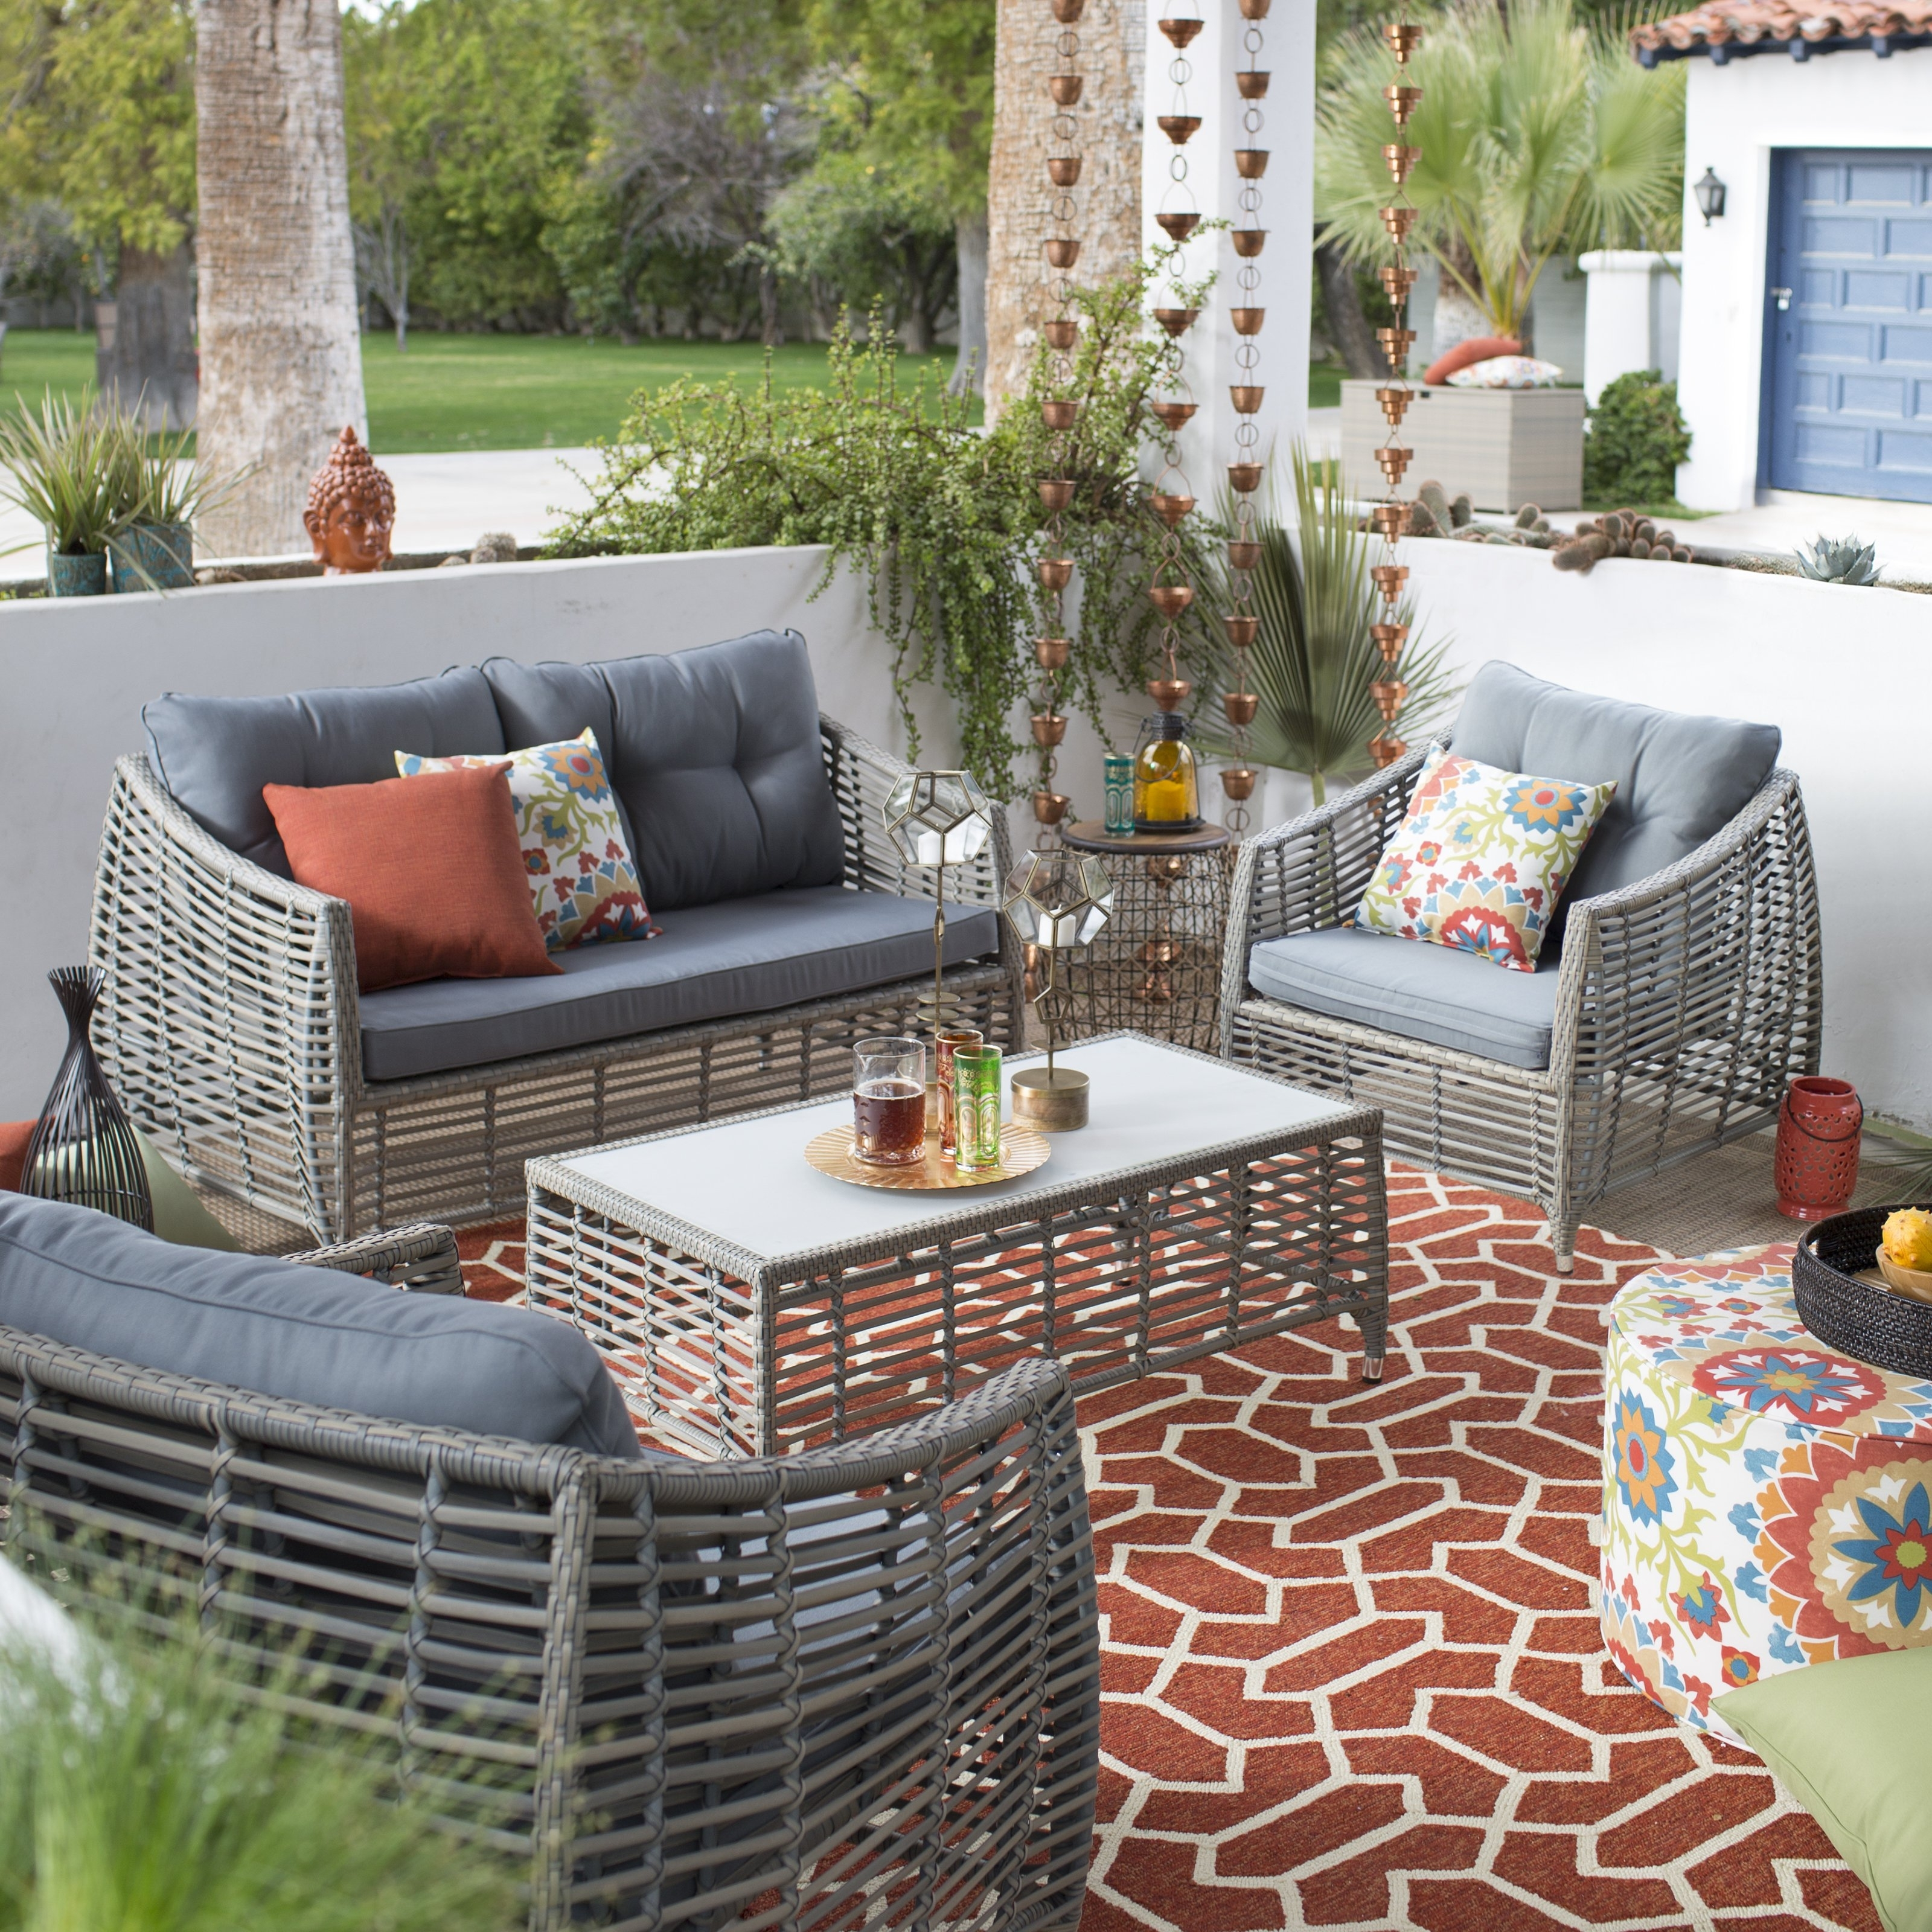 Widely Used Hayneedle Patio Conversation Sets Within Belham Living Kambree All Weather Wicker Outdoor Conversation Set (View 20 of 20)